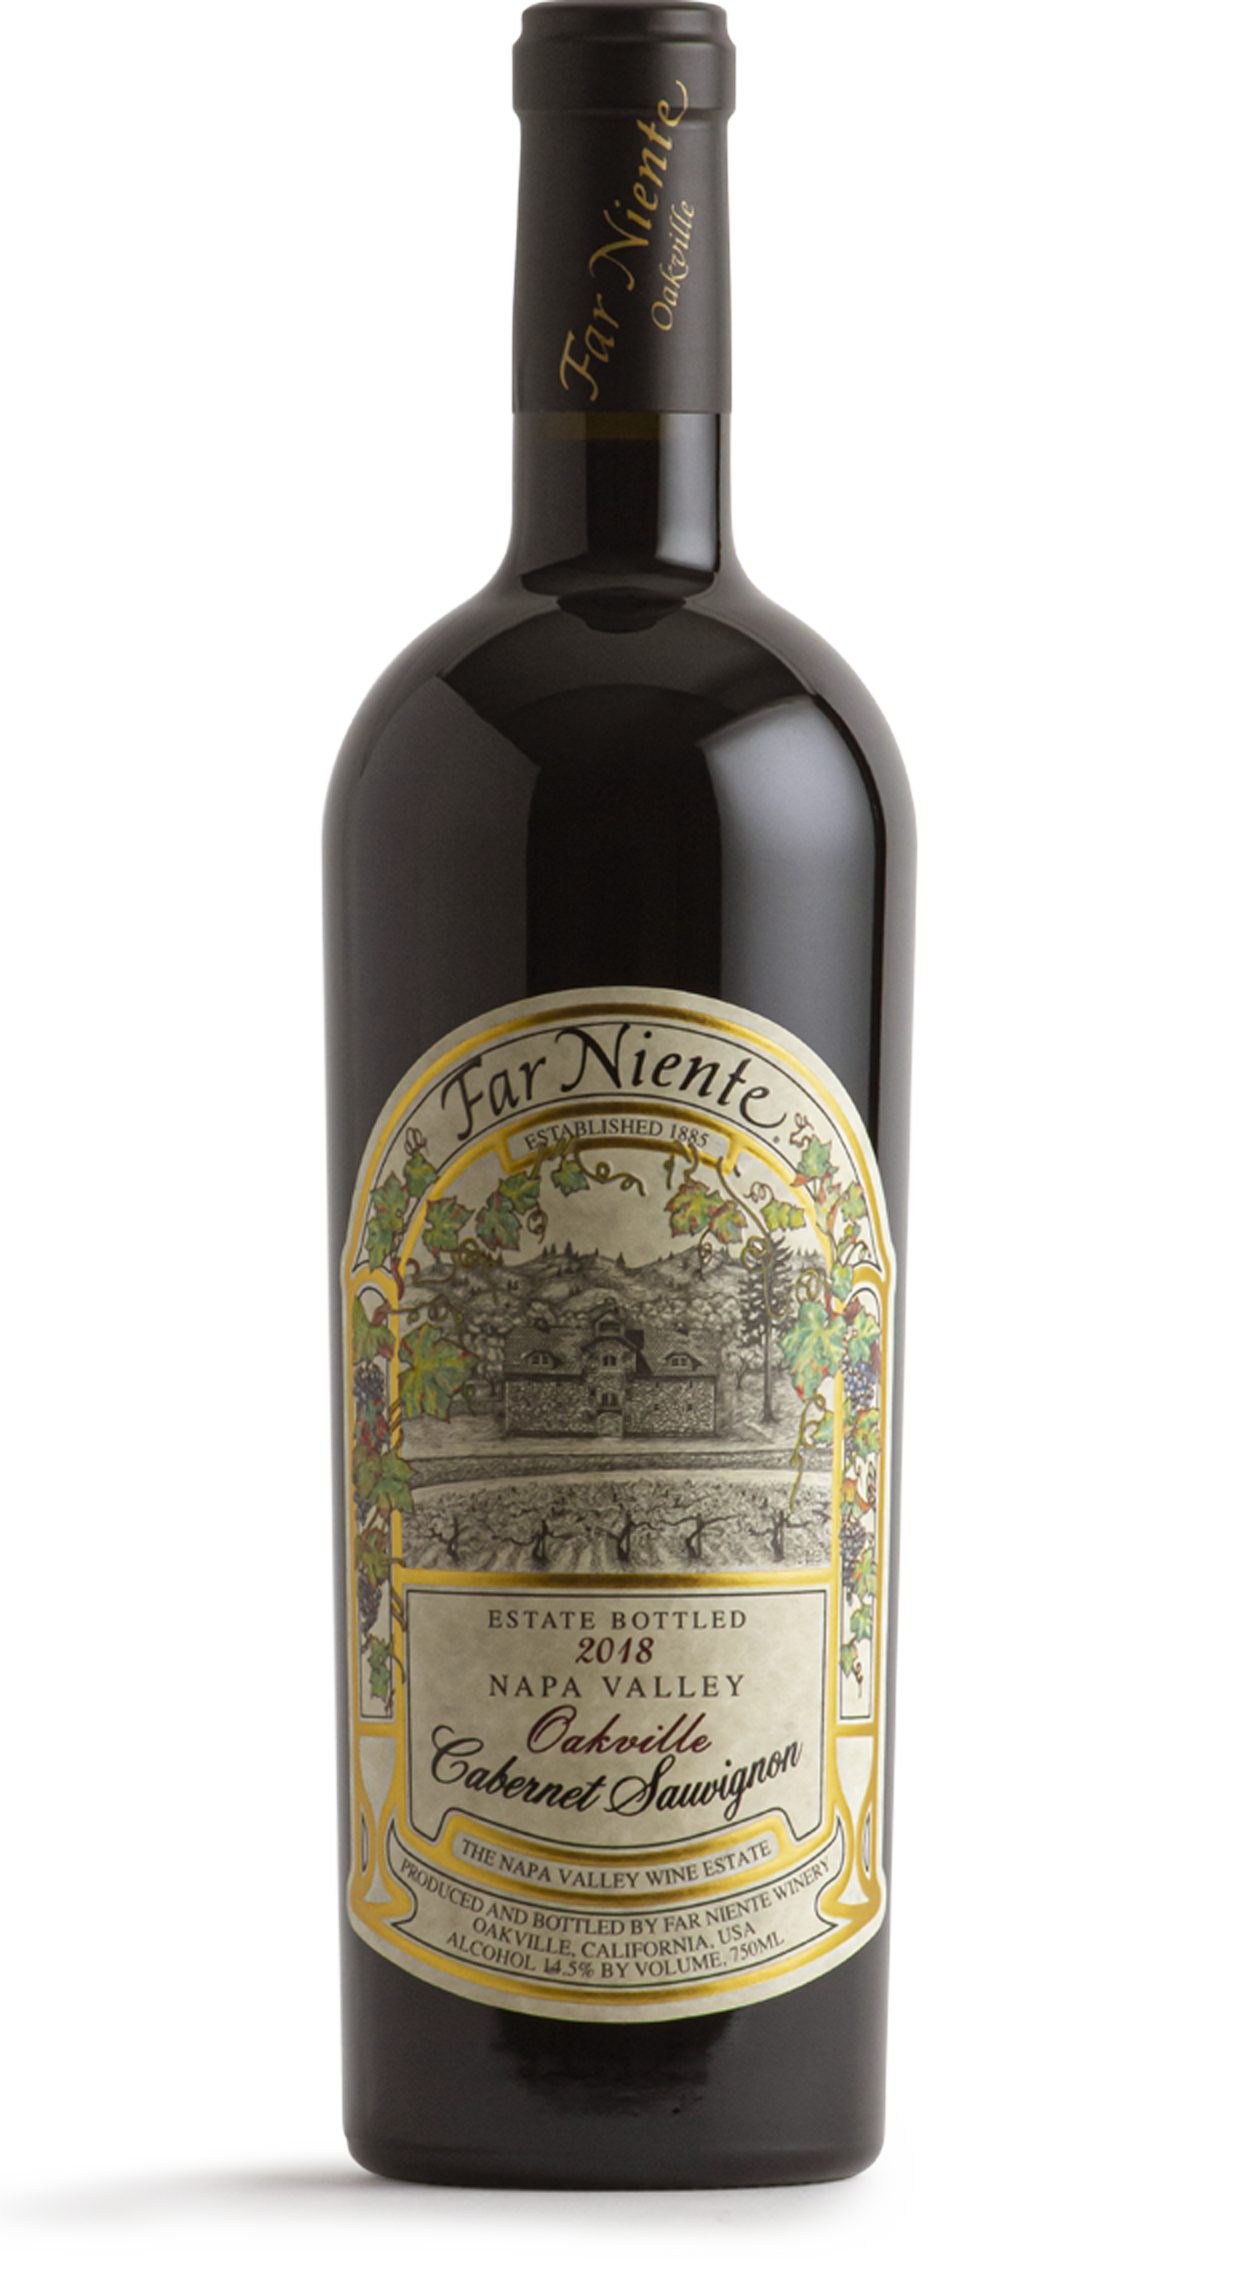 2018 Far Niente Estate Bottled Cabernet Sauvignon, Oakville